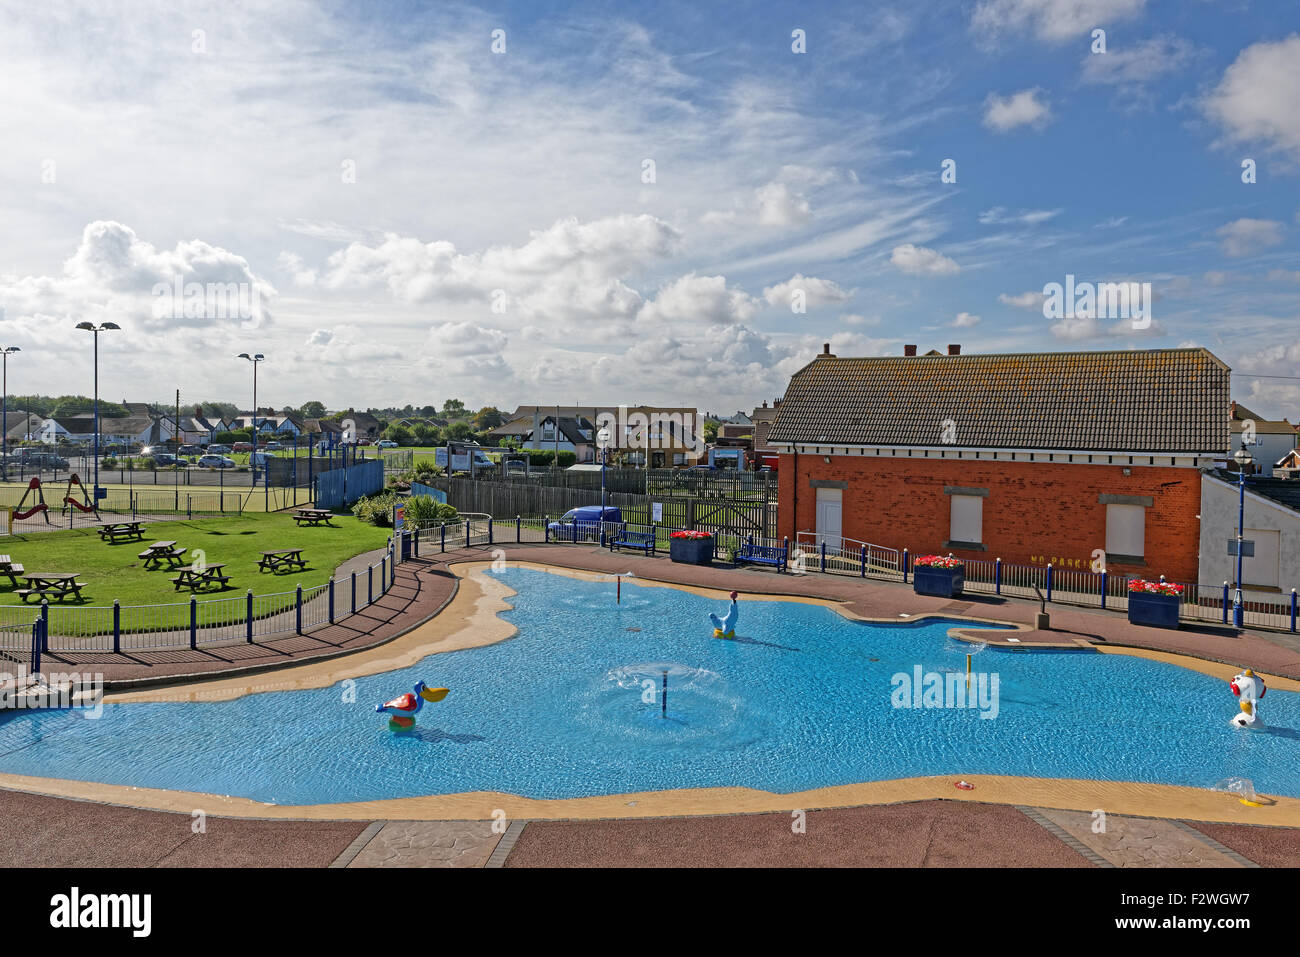 Childrens' paddling pool in Sutton on Sea,Lincolnshire,UK Stock Photo